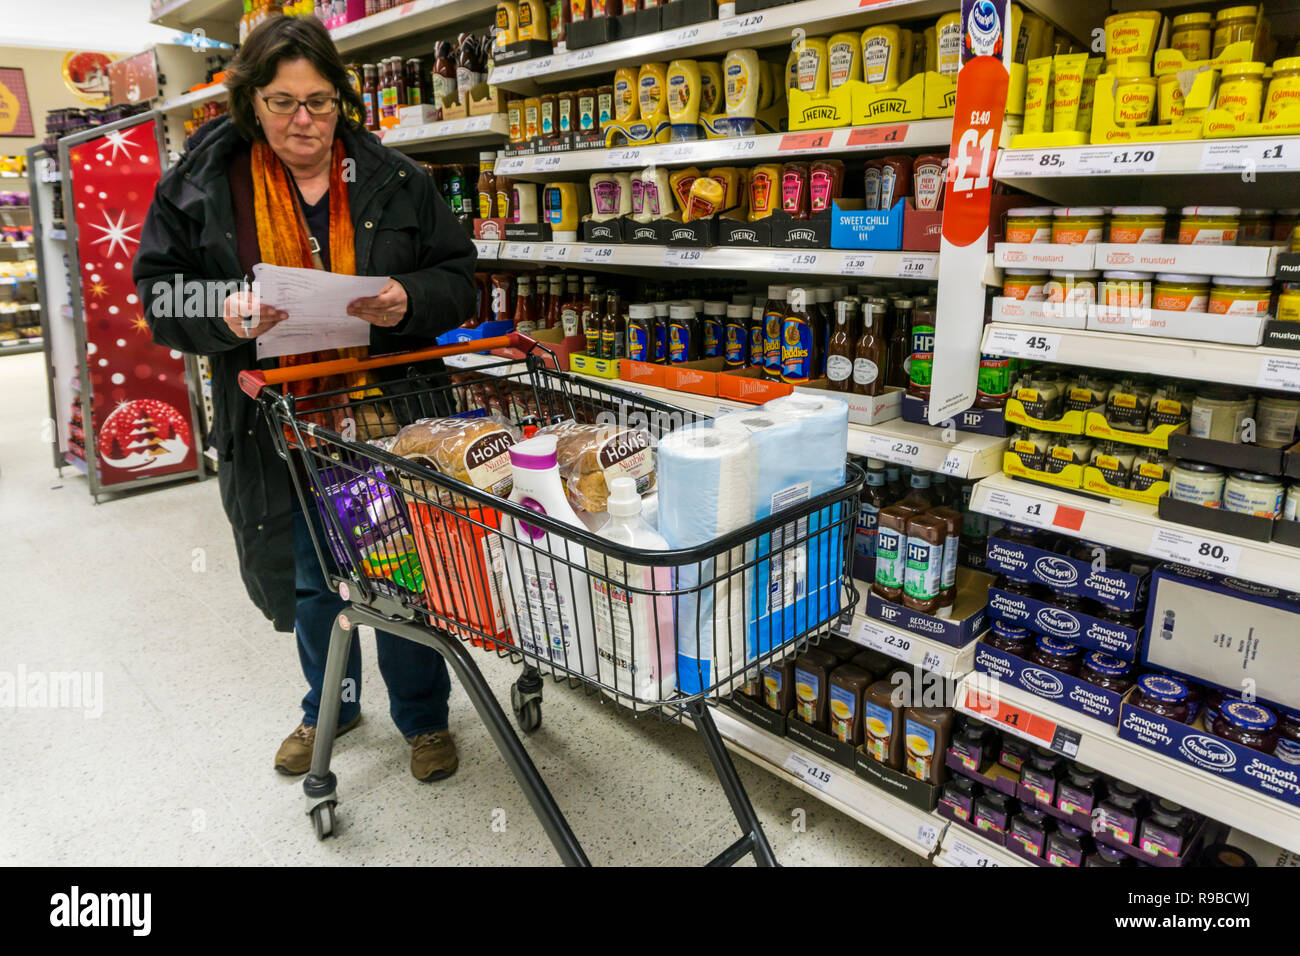 Woman checking a handwritten shopping list next to a full supermarket trolley.  Harassed, worried last minute shopping. - Stock Image